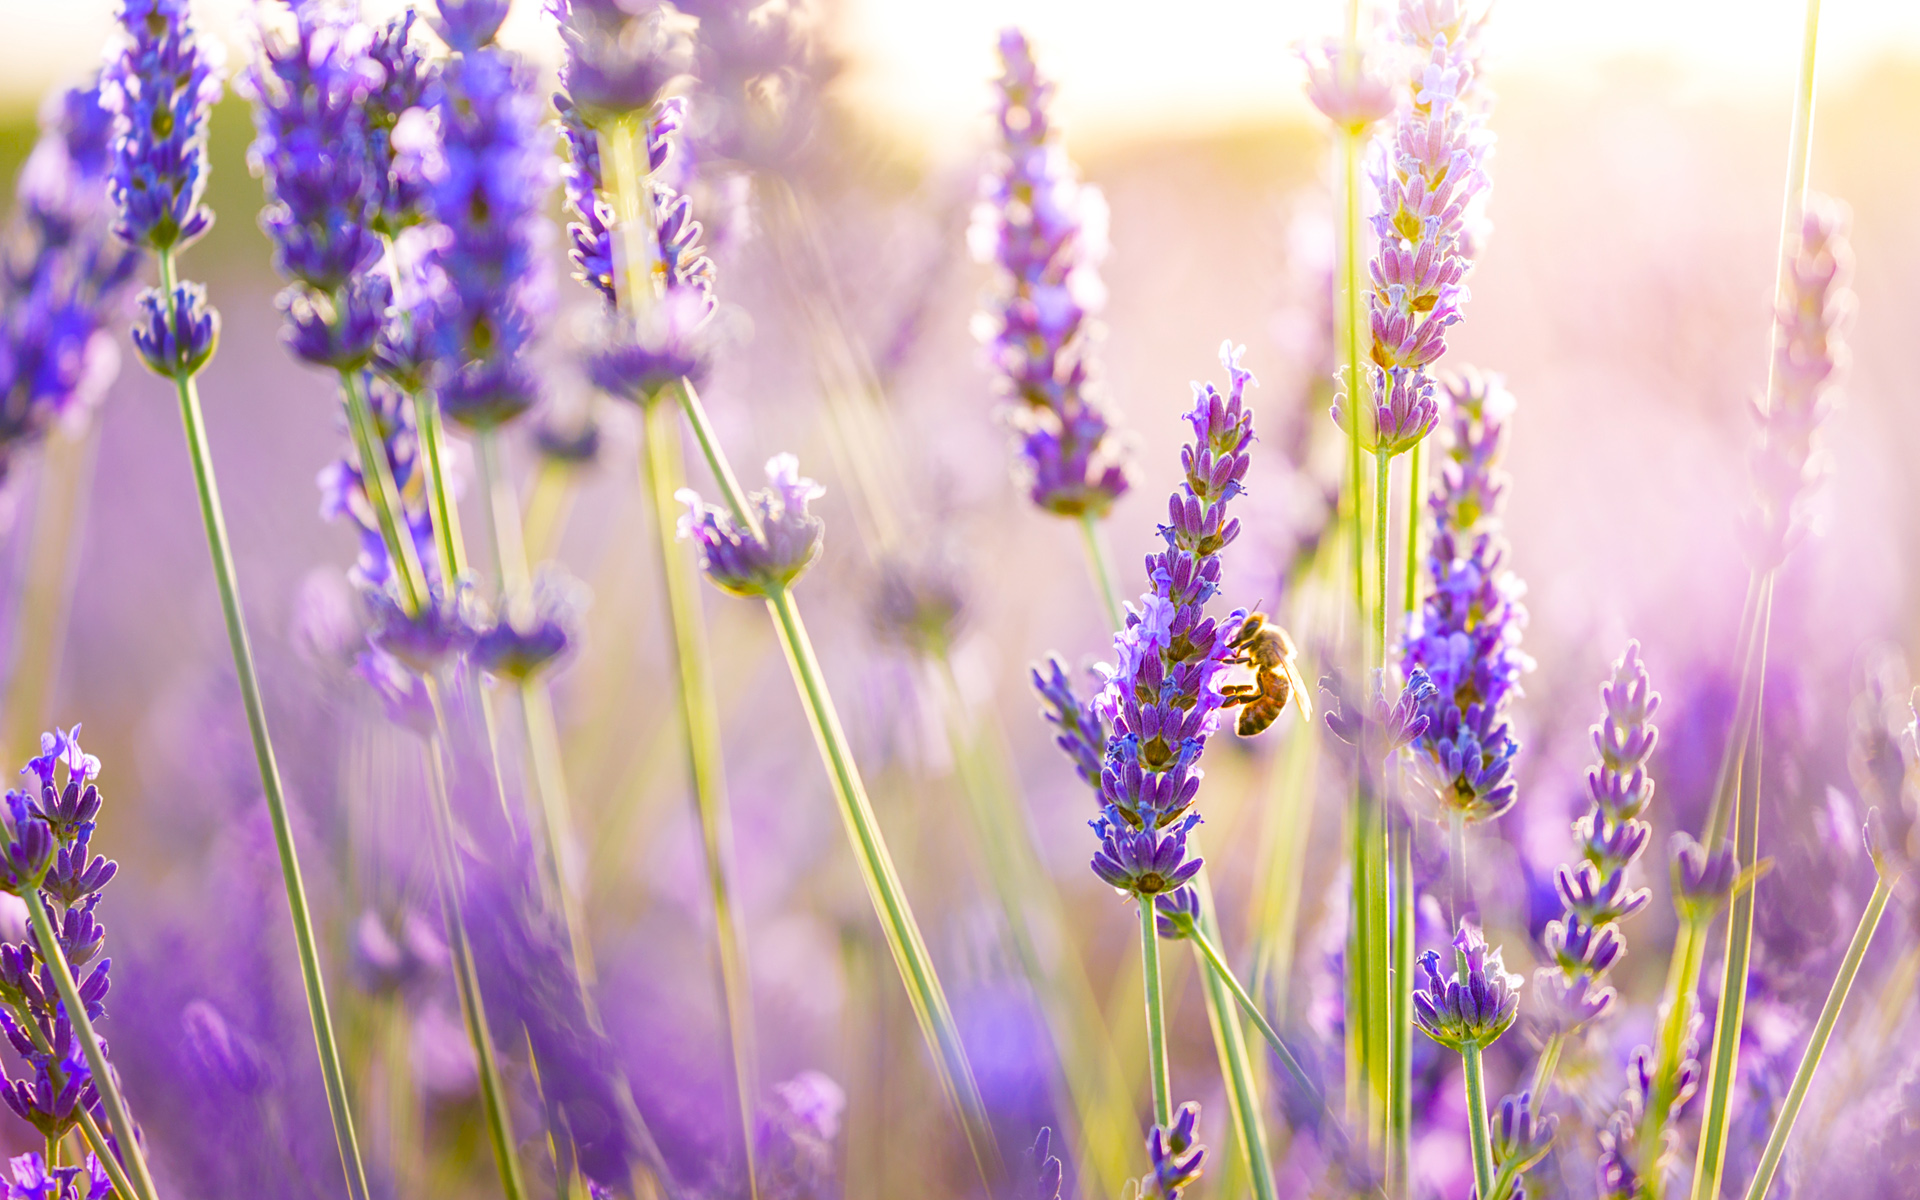 Lavender Flowers Wallpapers HD Wallpapers 1920x1200